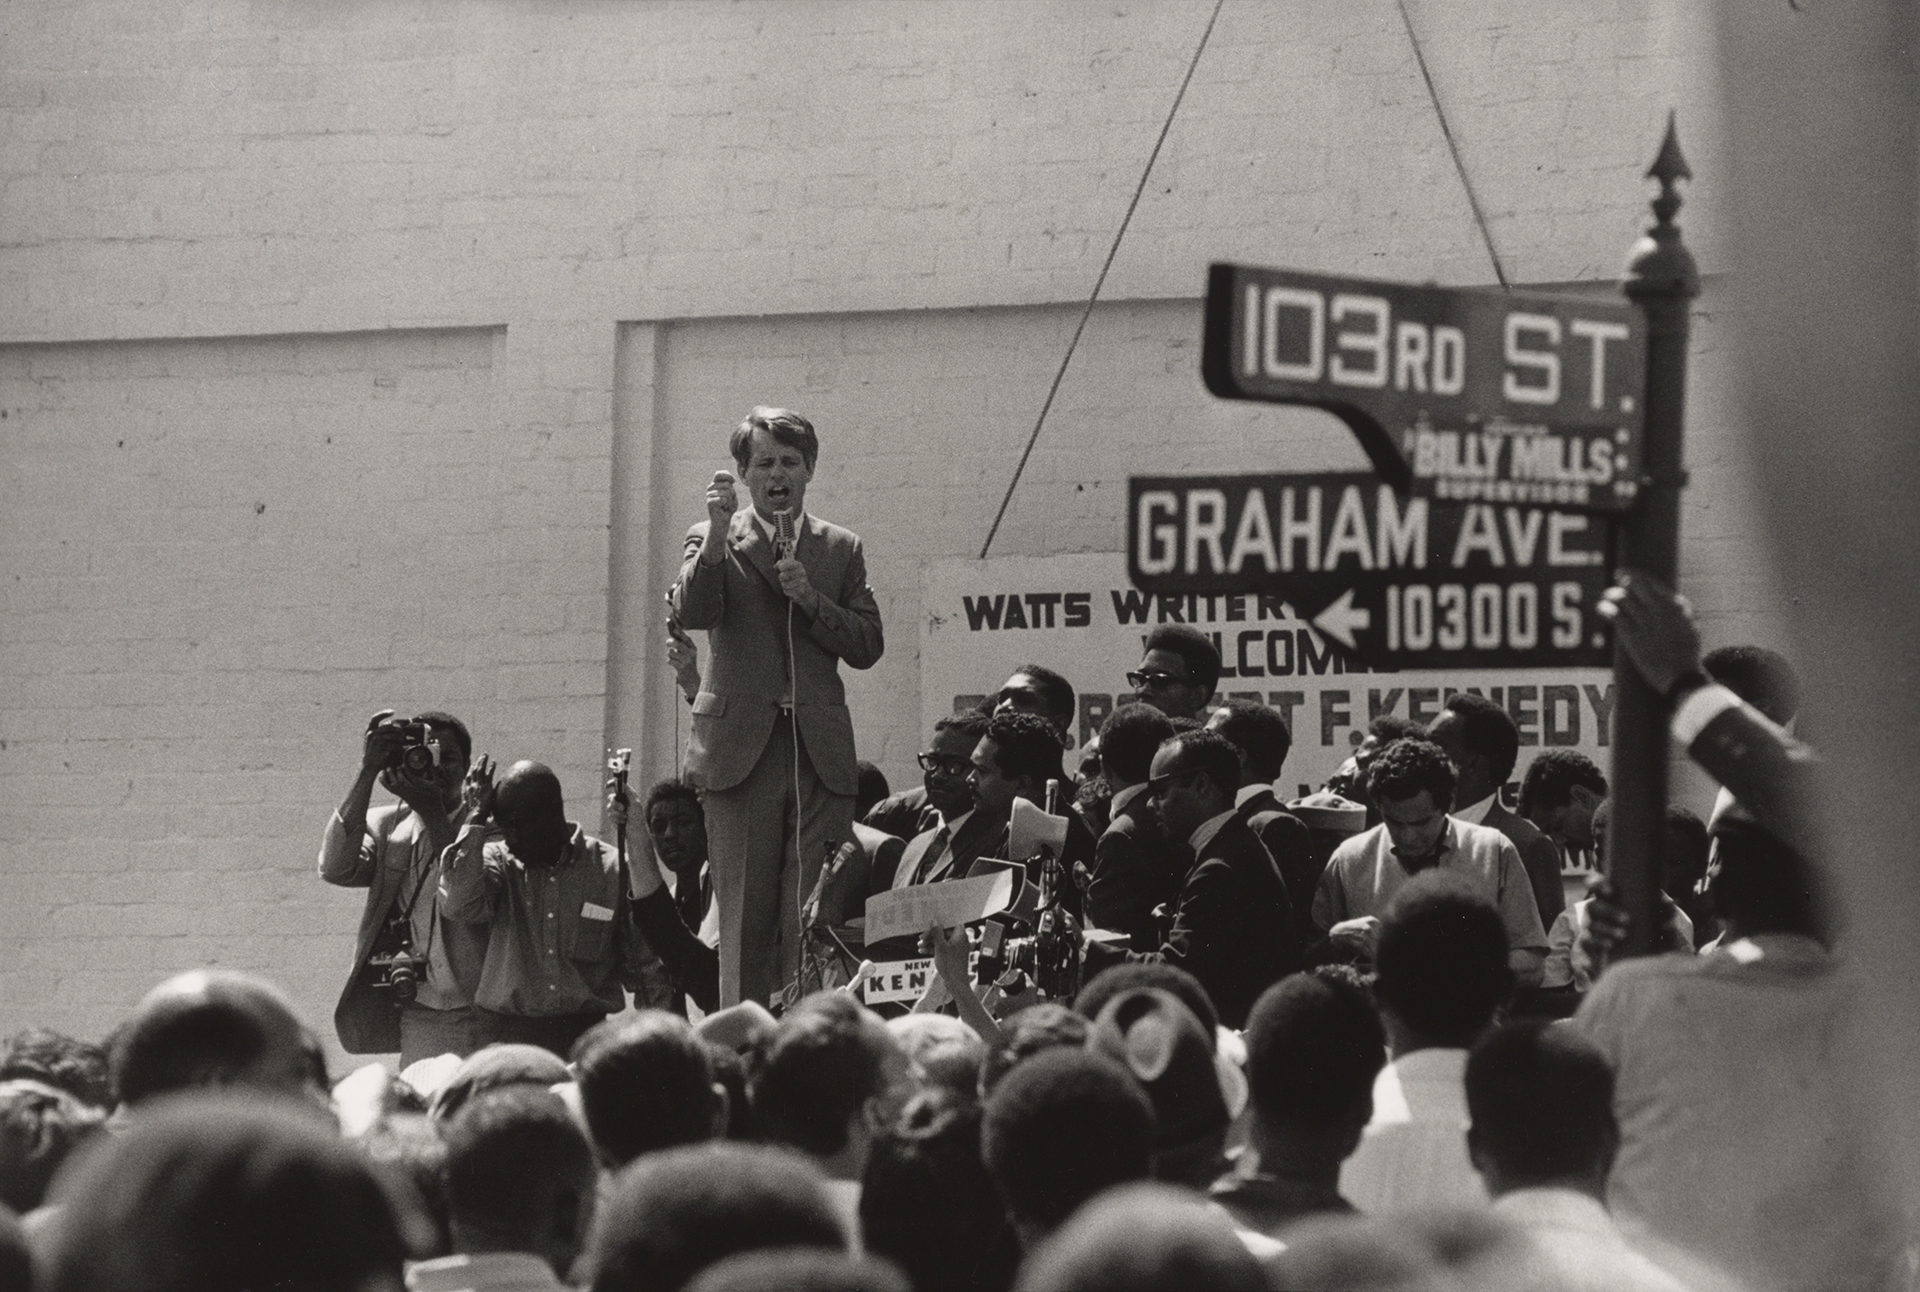 David Hume Kennerly photo of Robert Kennedy campaigning in Los Angeles, 1968